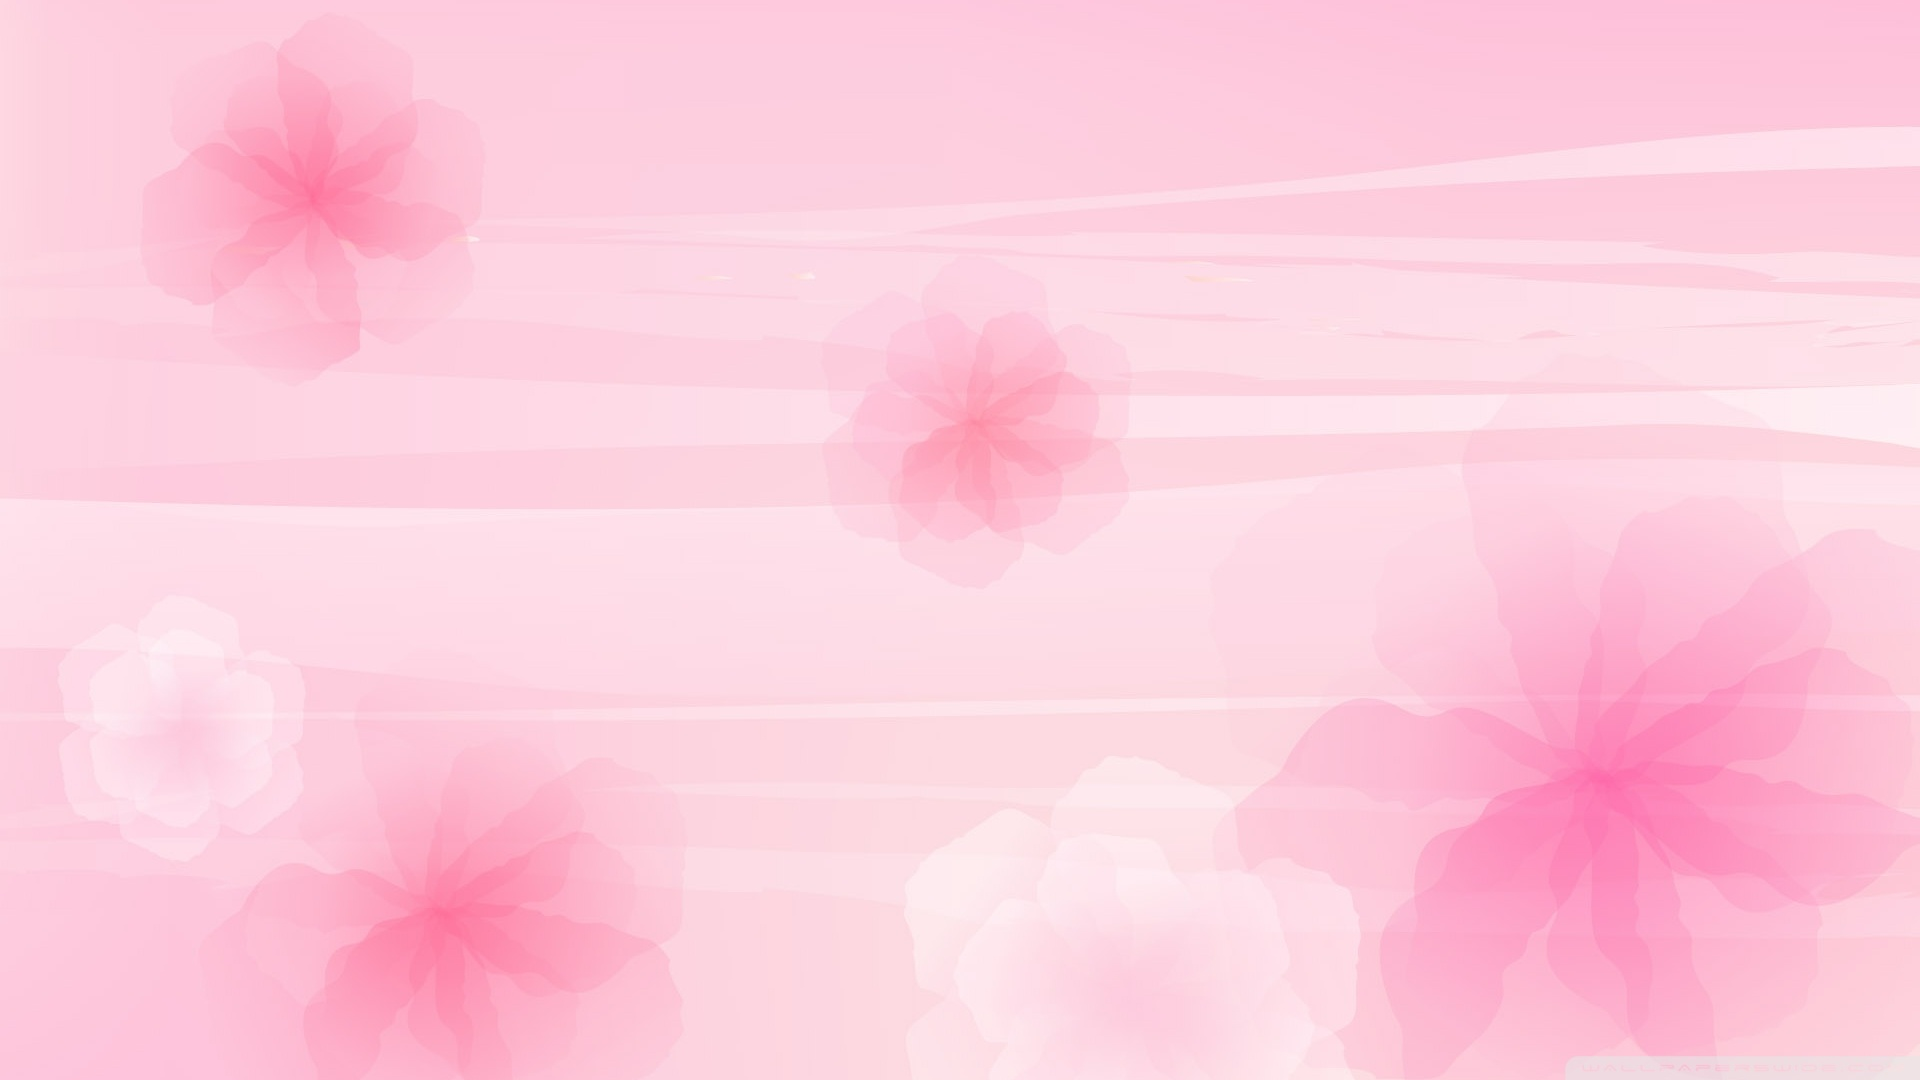 Pink Color 1080p   Wallpaper High Definition High Quality 1920x1080